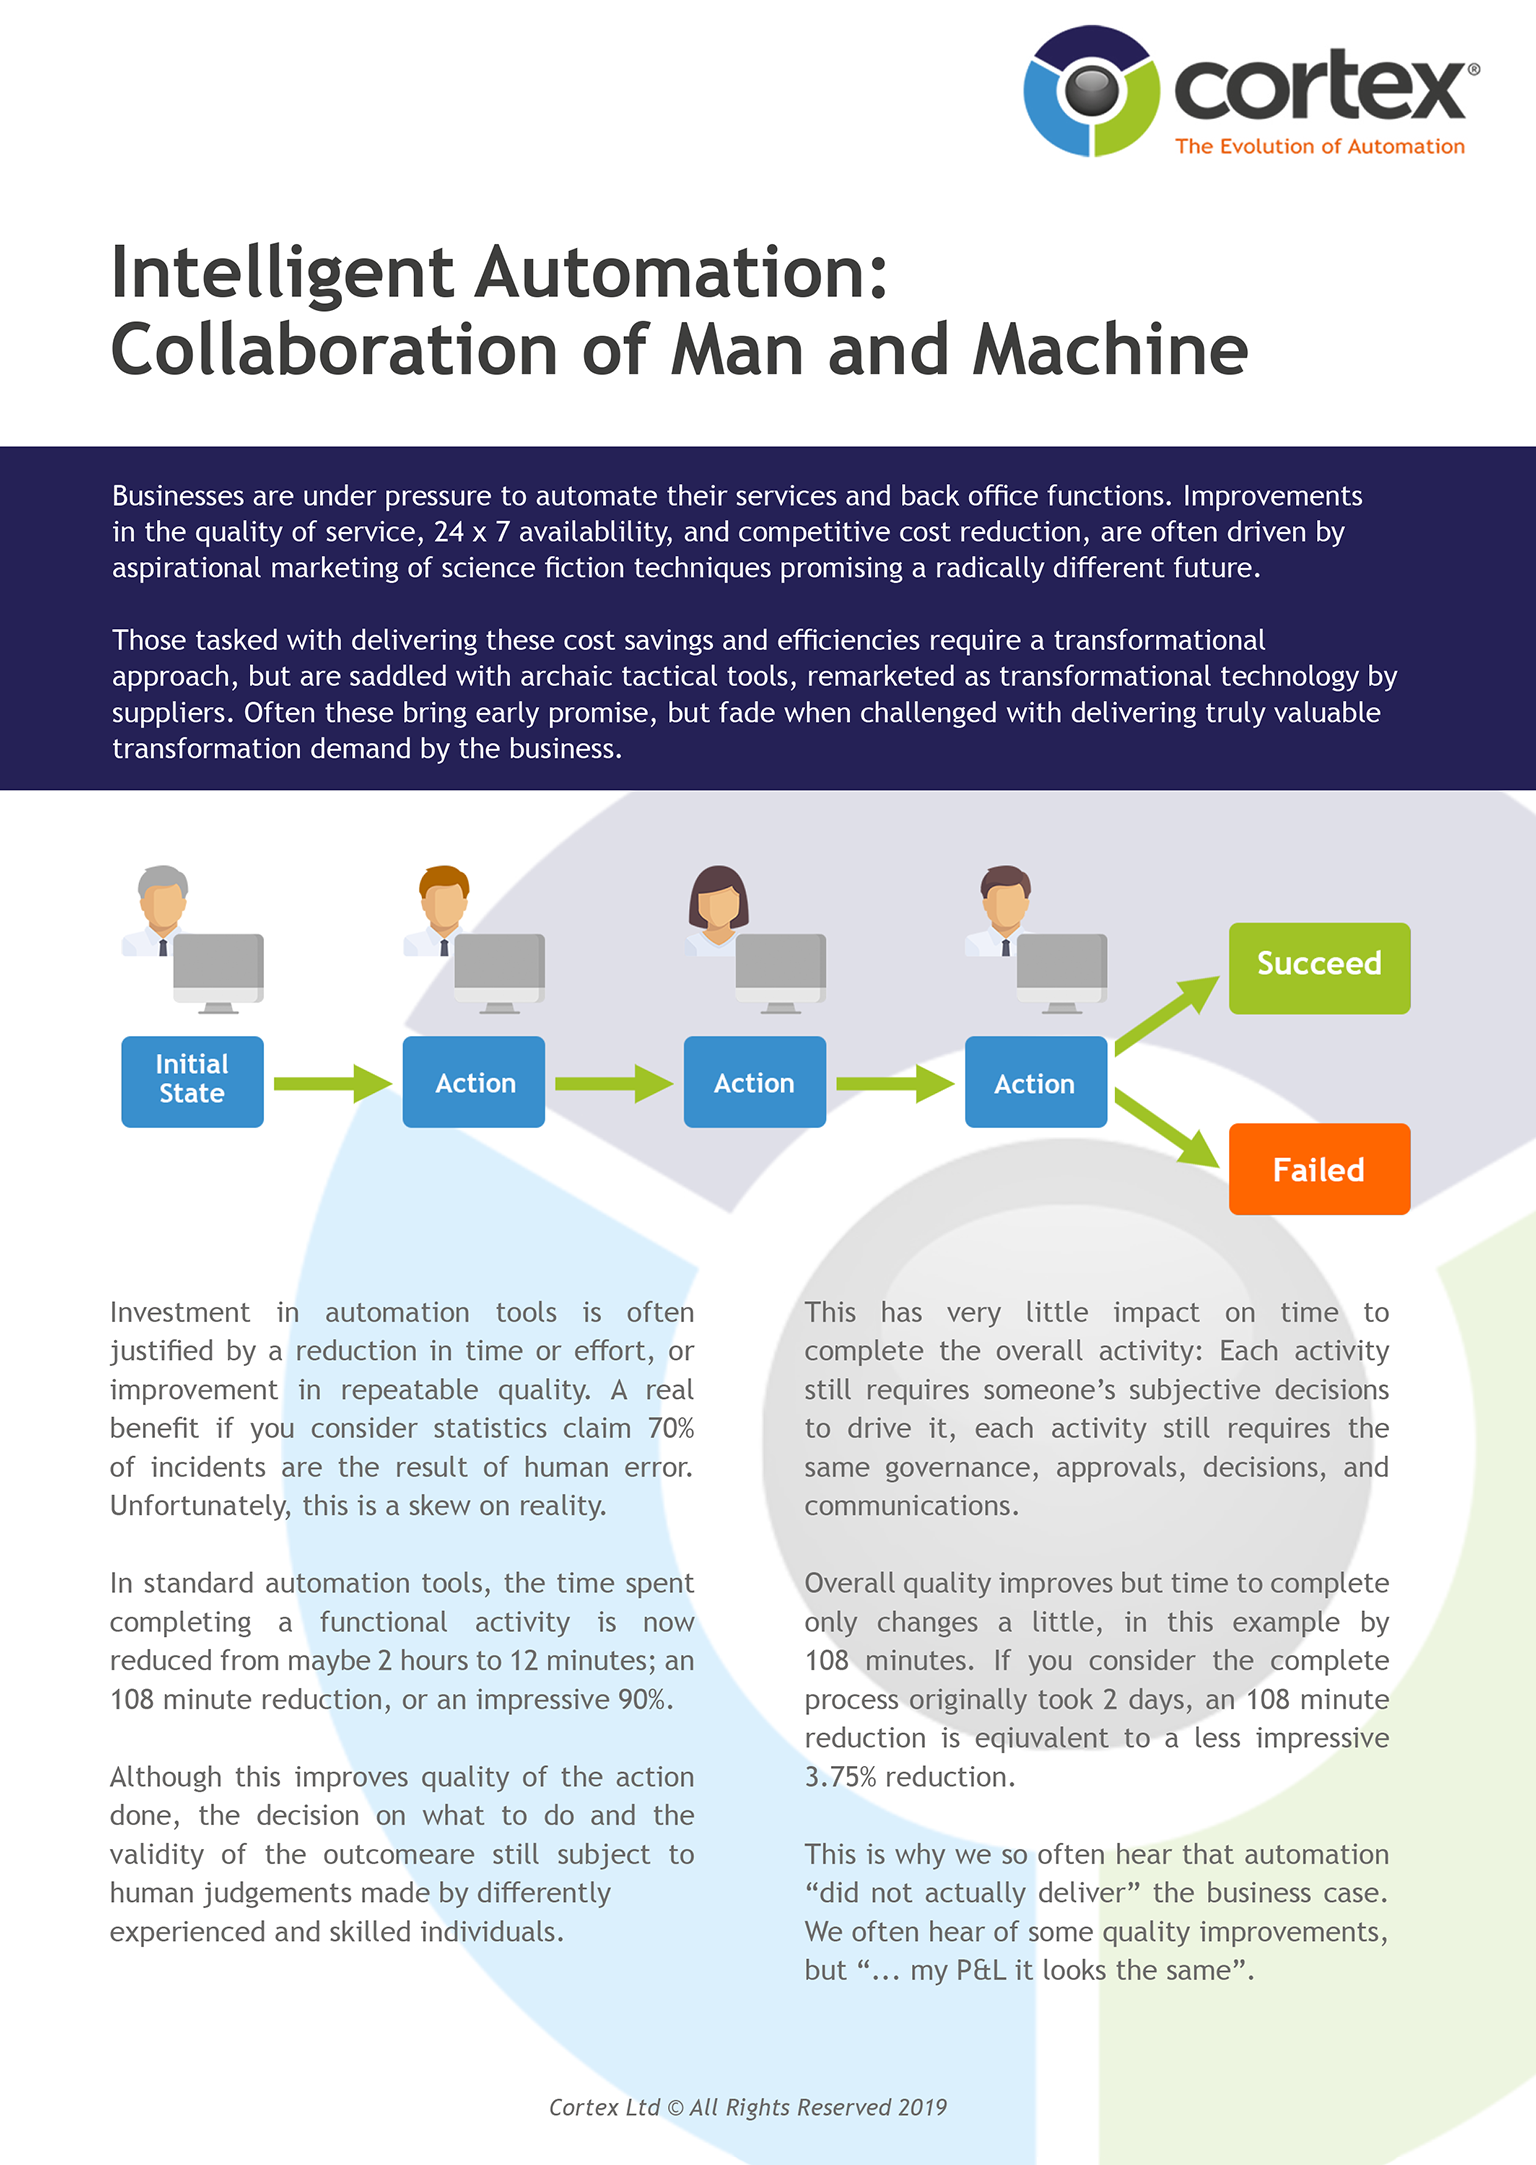 Intelligent Automation - Collaboration of Man and Machine-1